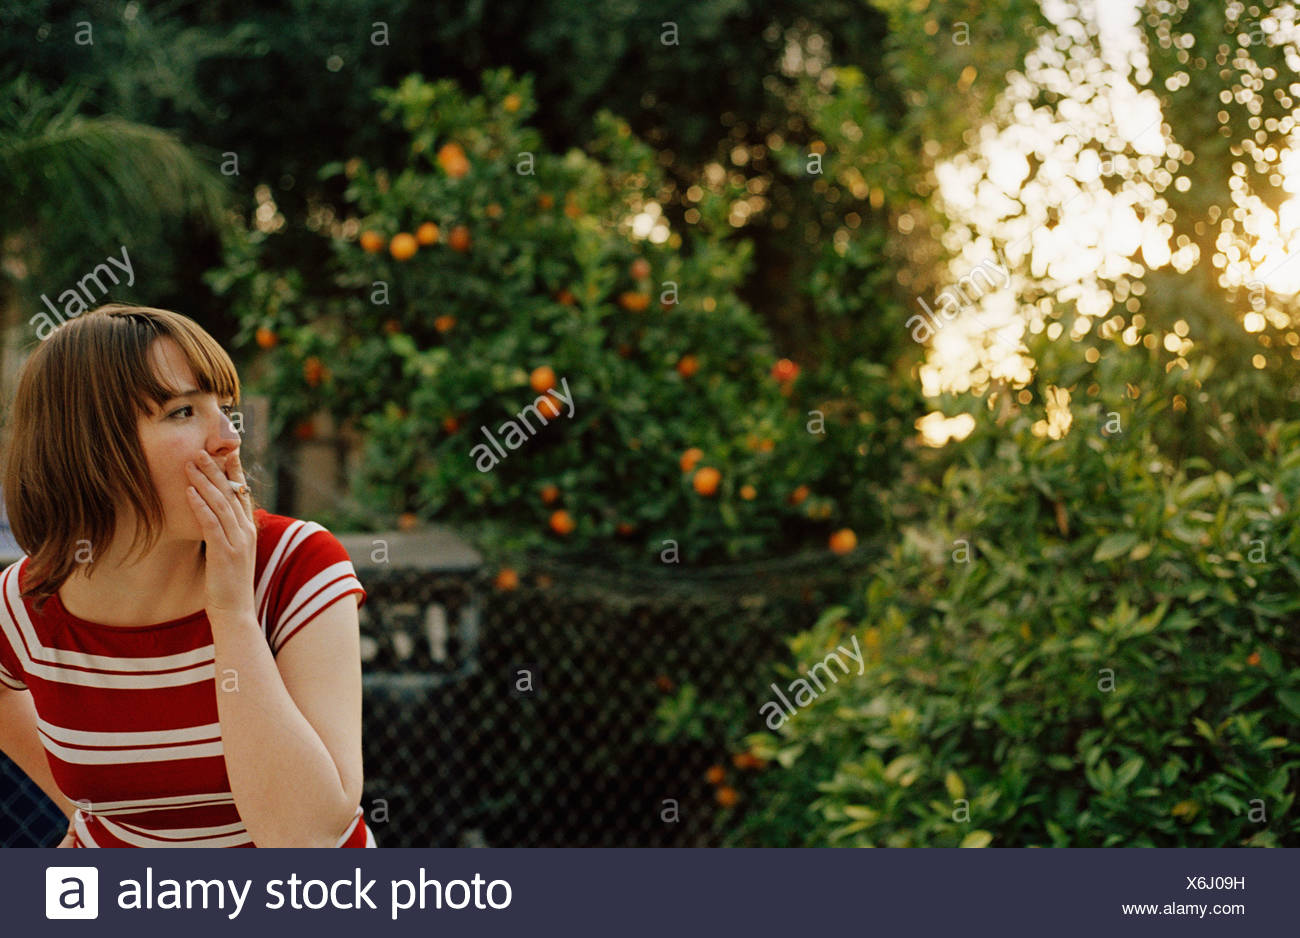 Young woman smoking a cigarette in a back yard - Stock Image